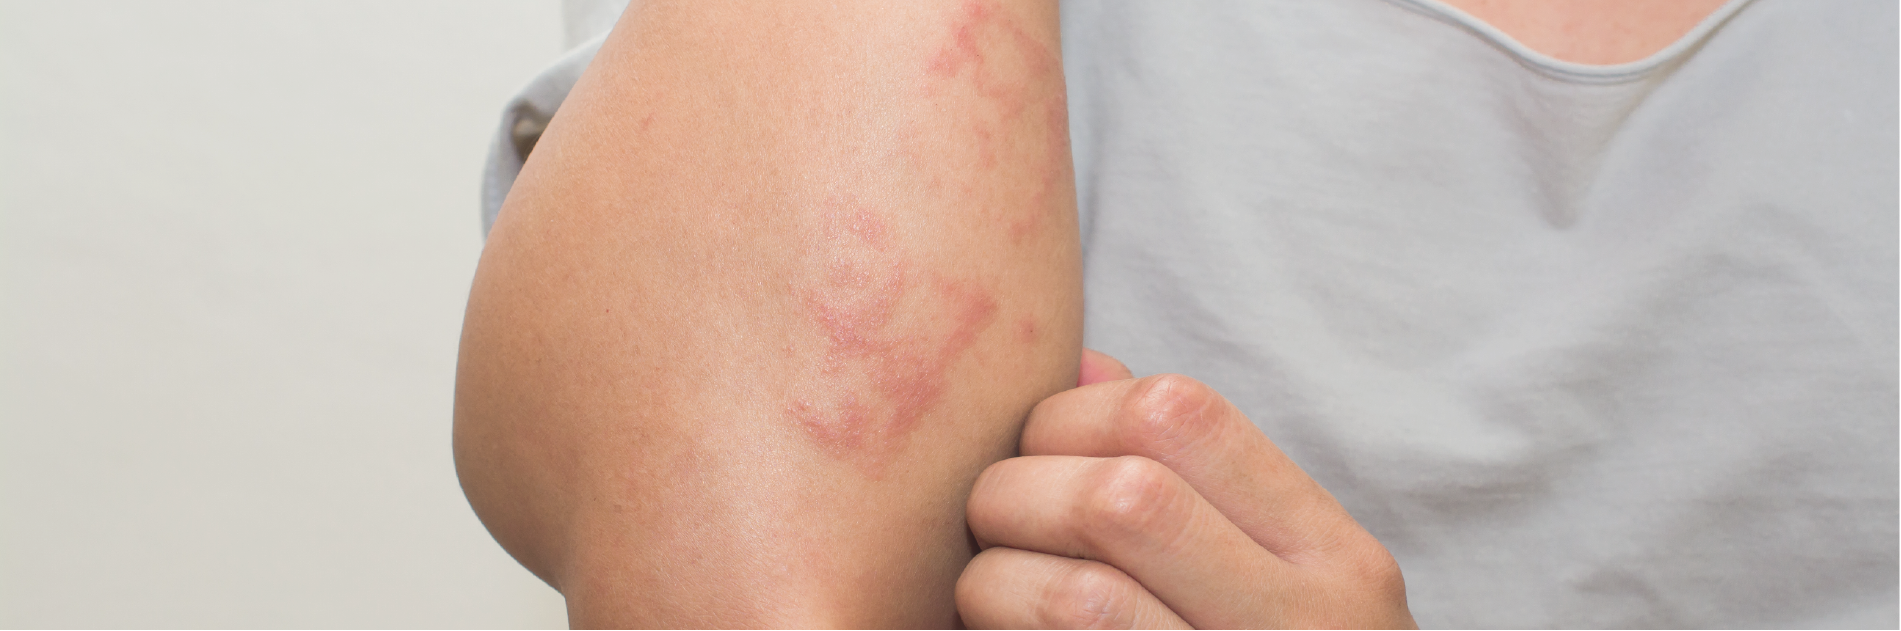 Rashes Are Not All Alike